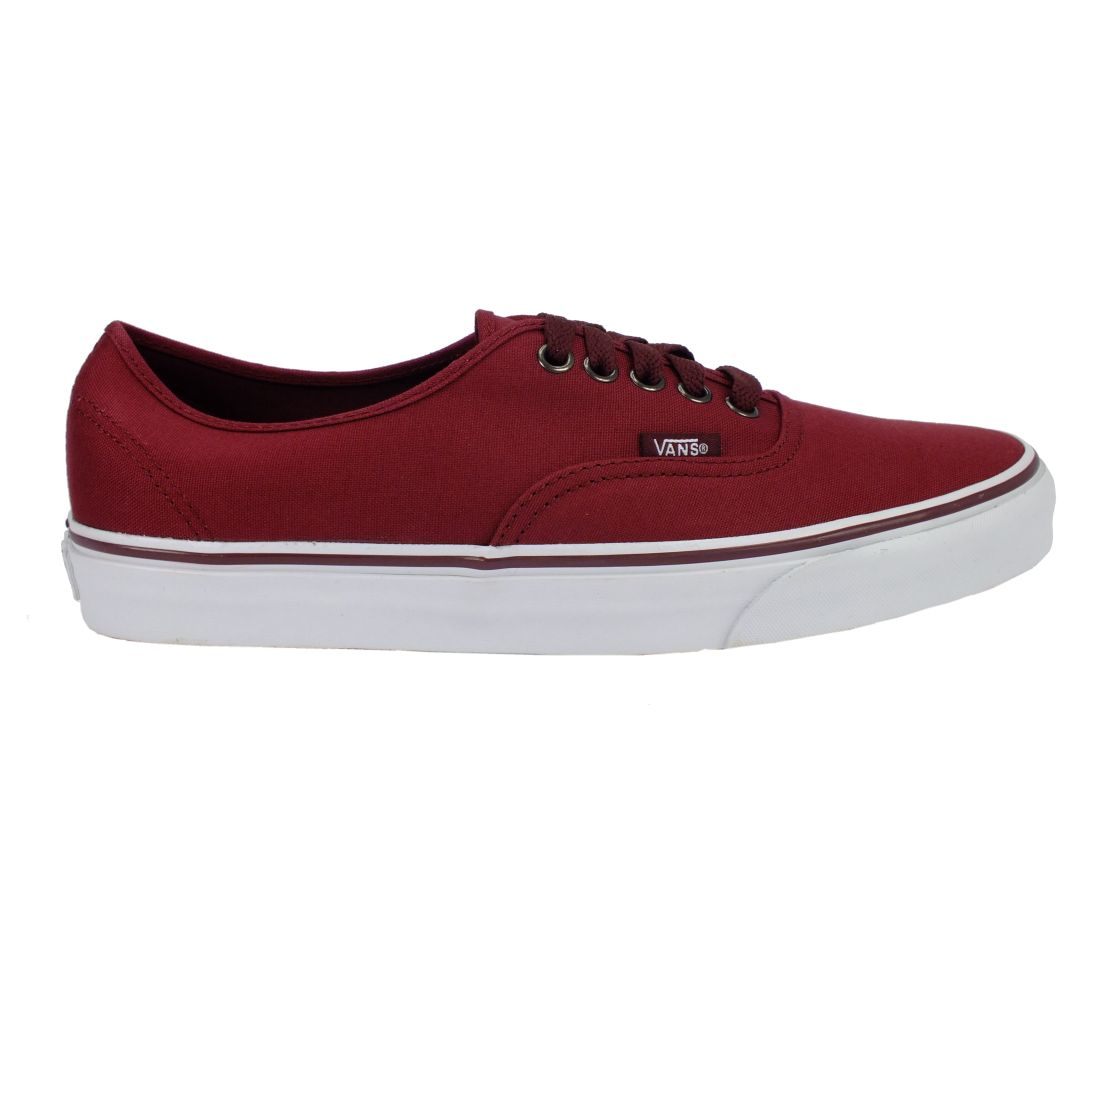 vans authentic schuhe sneaker turnschuhe damen herren diverse farben ebay. Black Bedroom Furniture Sets. Home Design Ideas